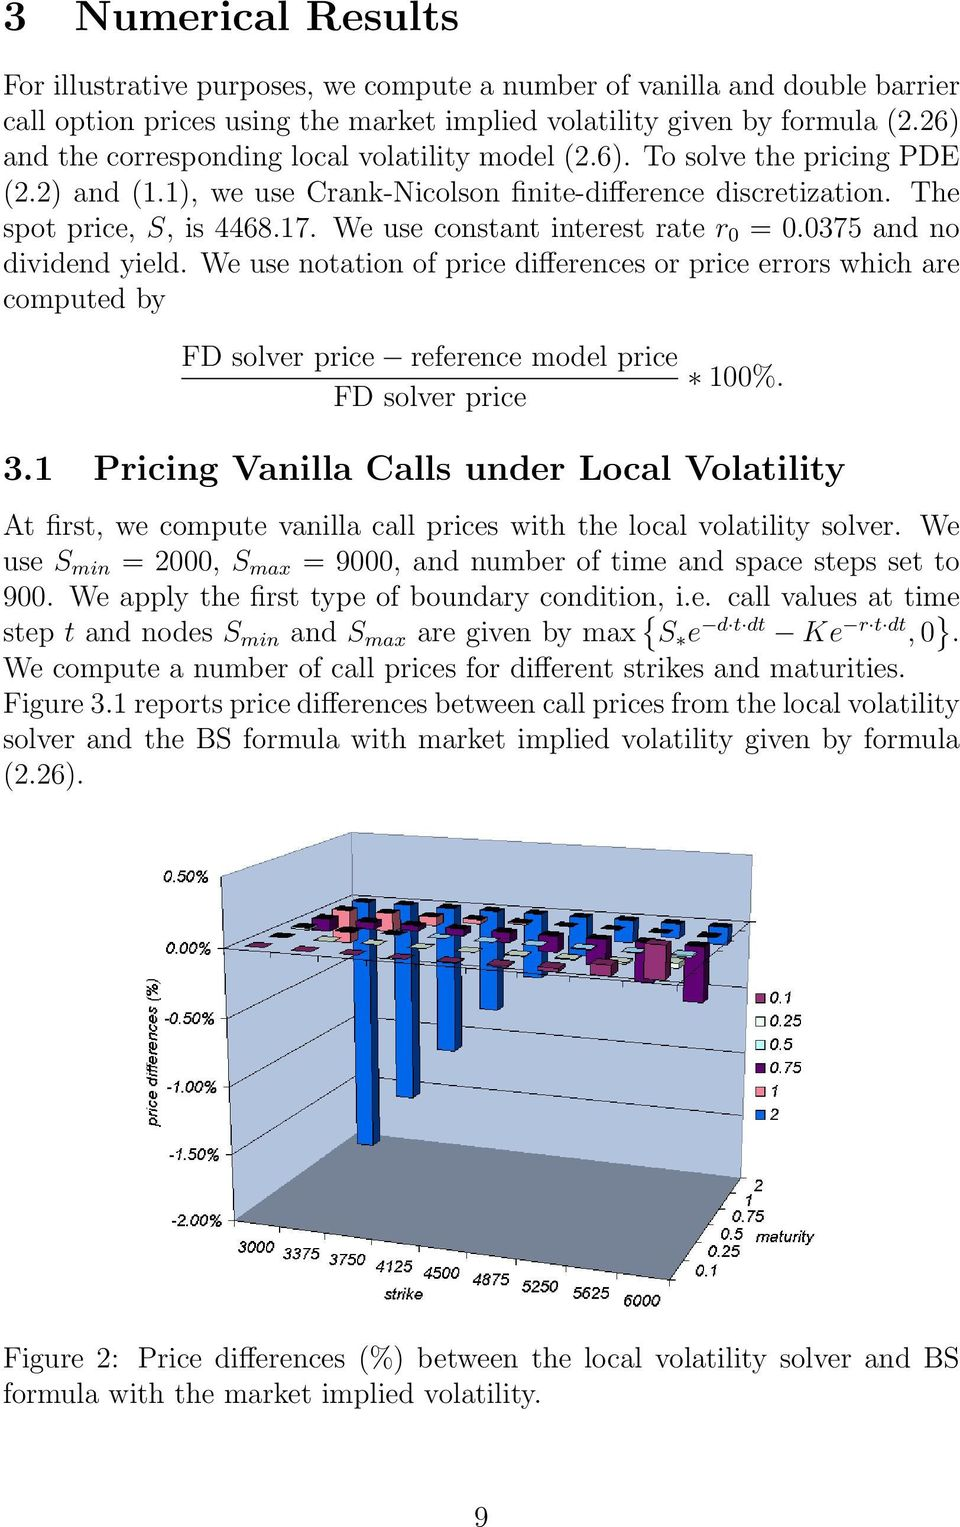 We use constant interest rate r 0 = 0.0375 and no dividend yield. We use notation of price differences or price errors which are computed by FD solver price reference model price FD solver price 100%.